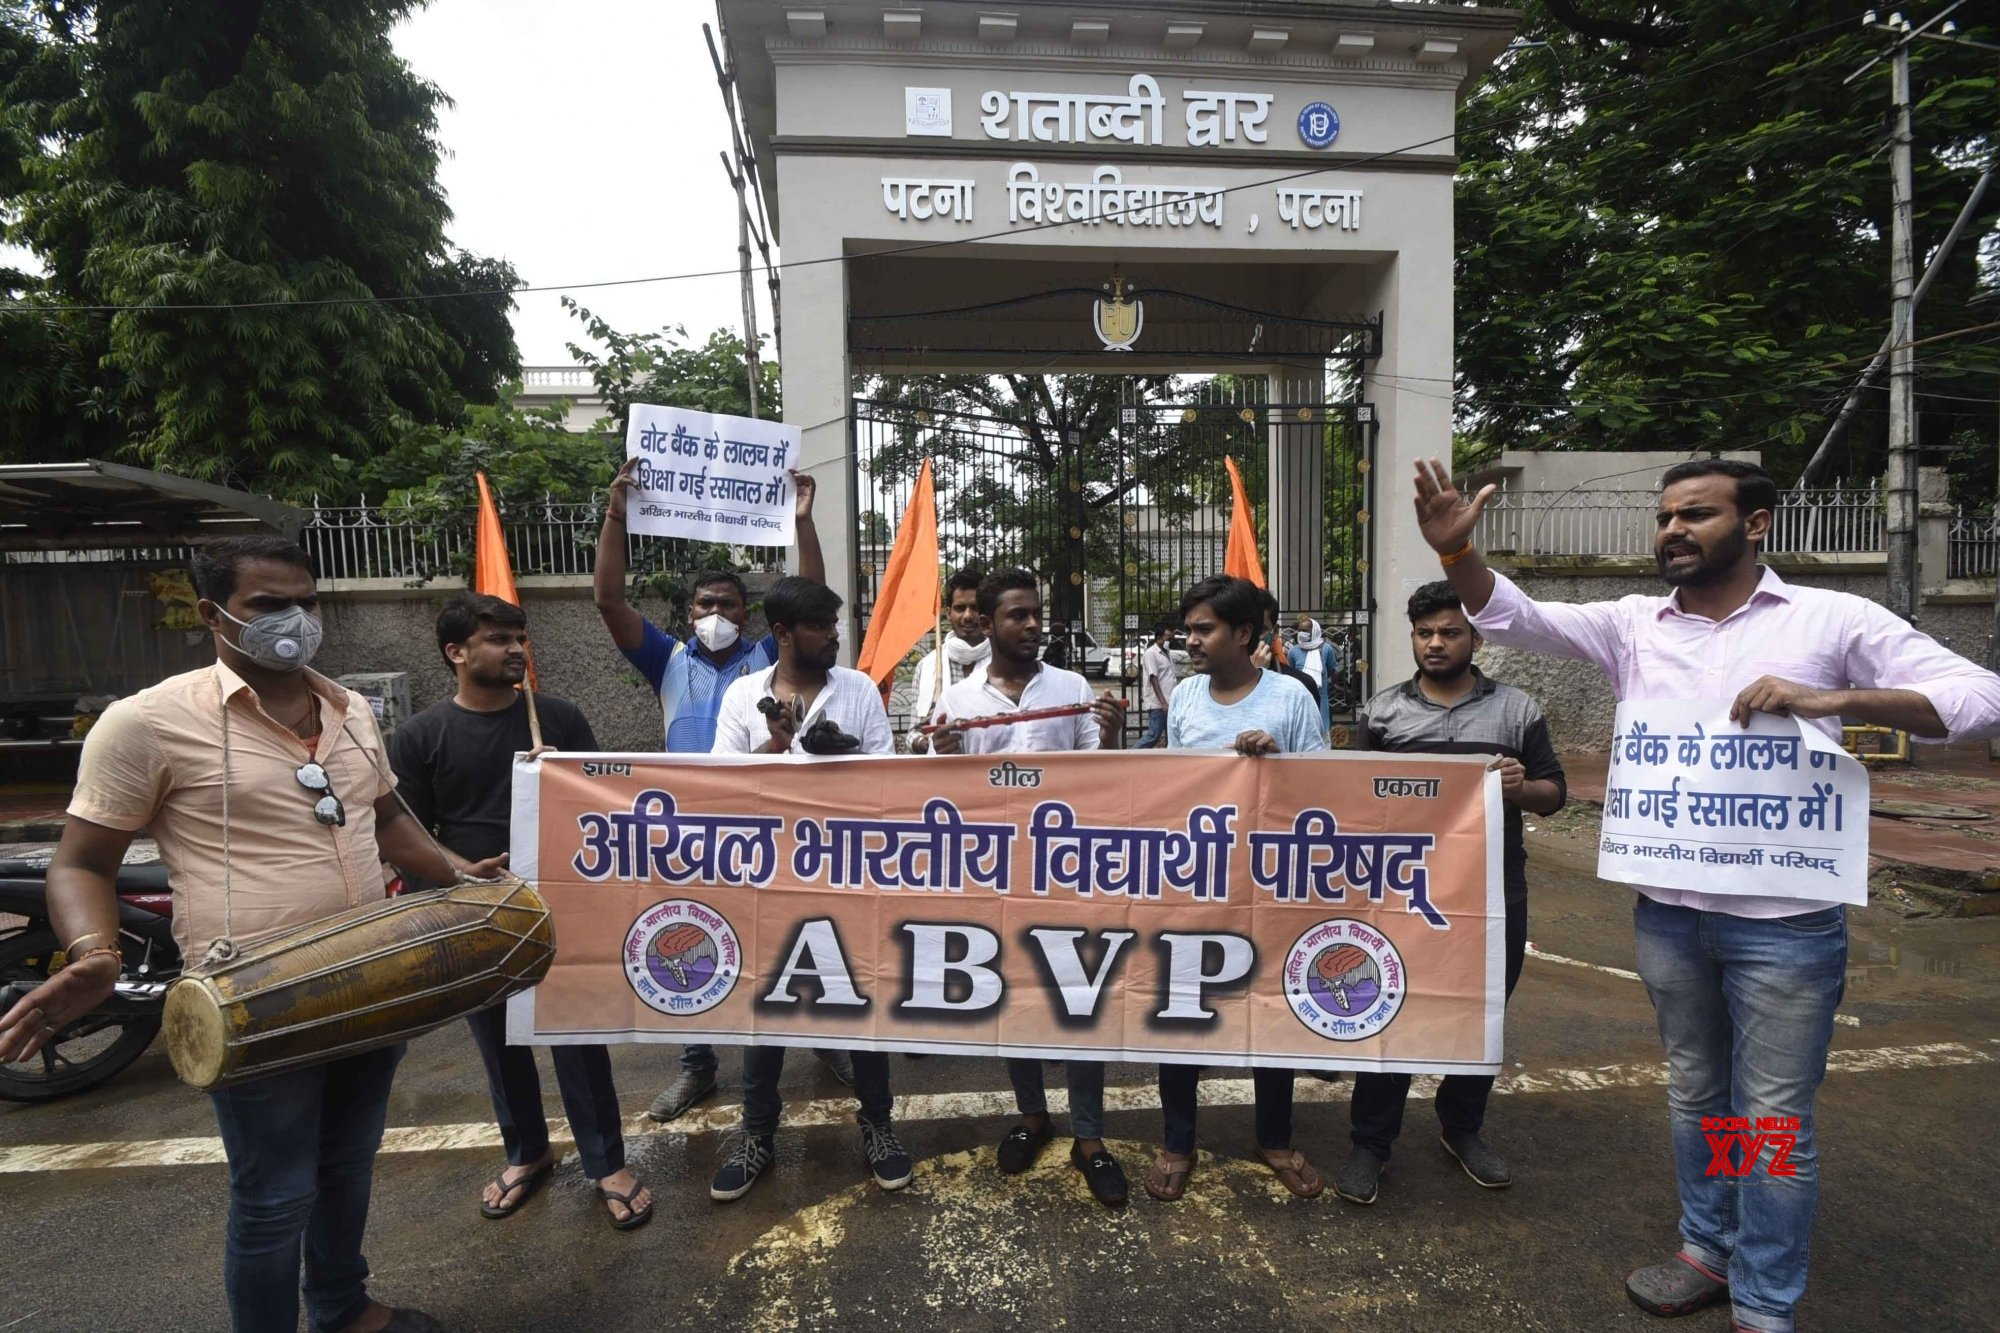 Patna: ABVP protests against fee hike at PU #Gallery